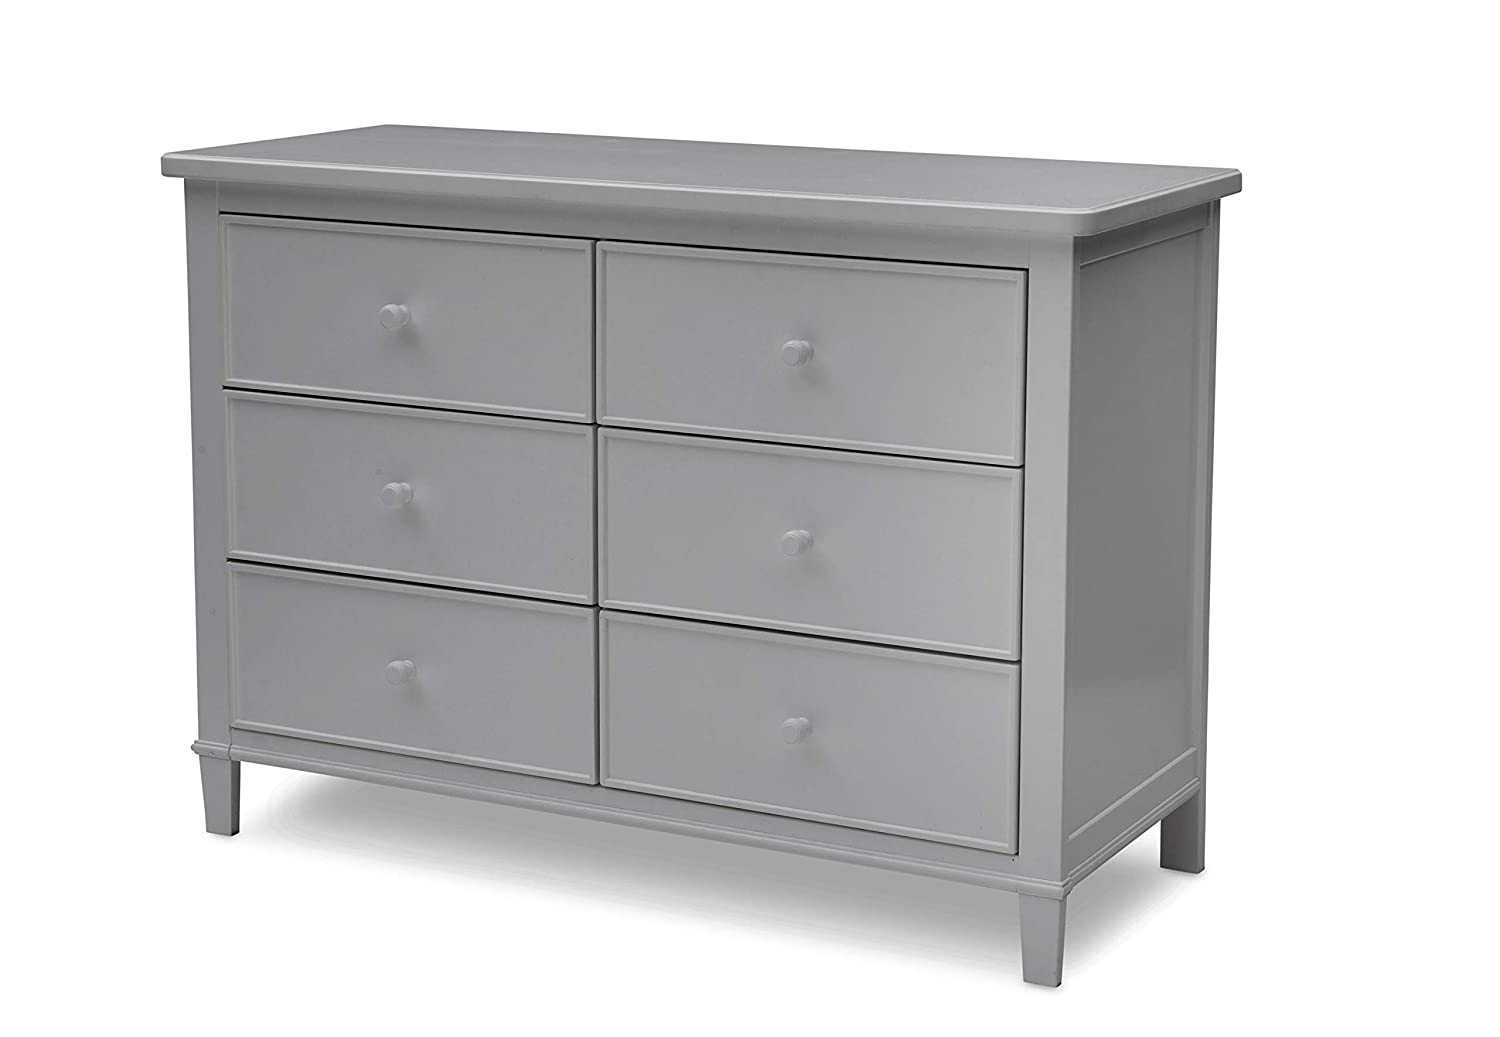 Delta Children Haven 6 Drawer Dresser, Grey